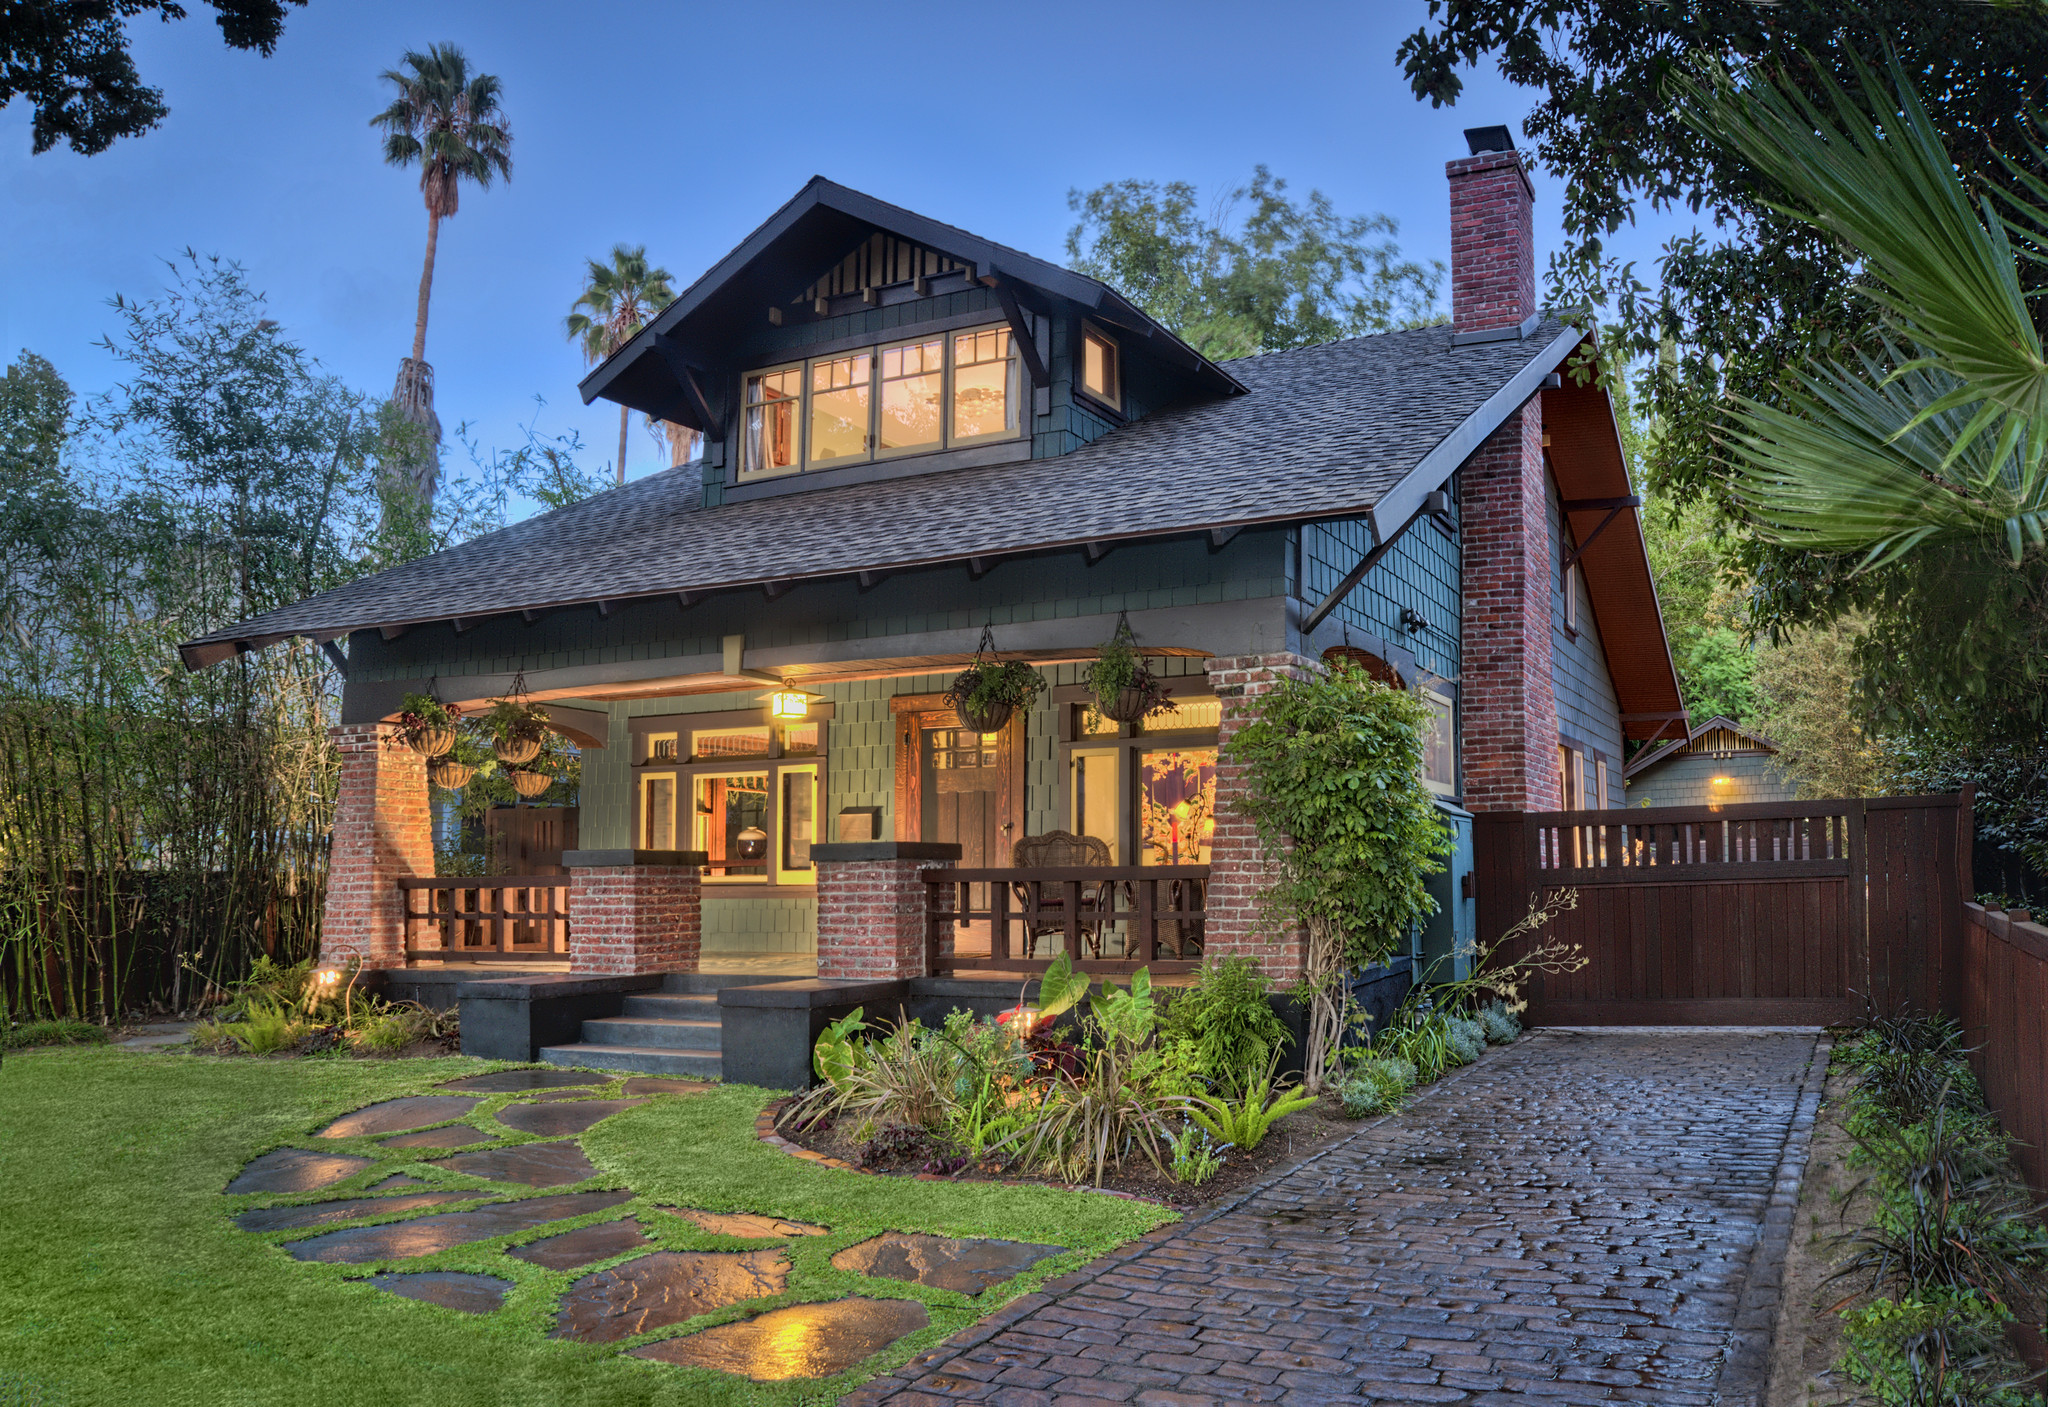 2014 craftsman weekend returns to pasadena la times for Craftsman home builders